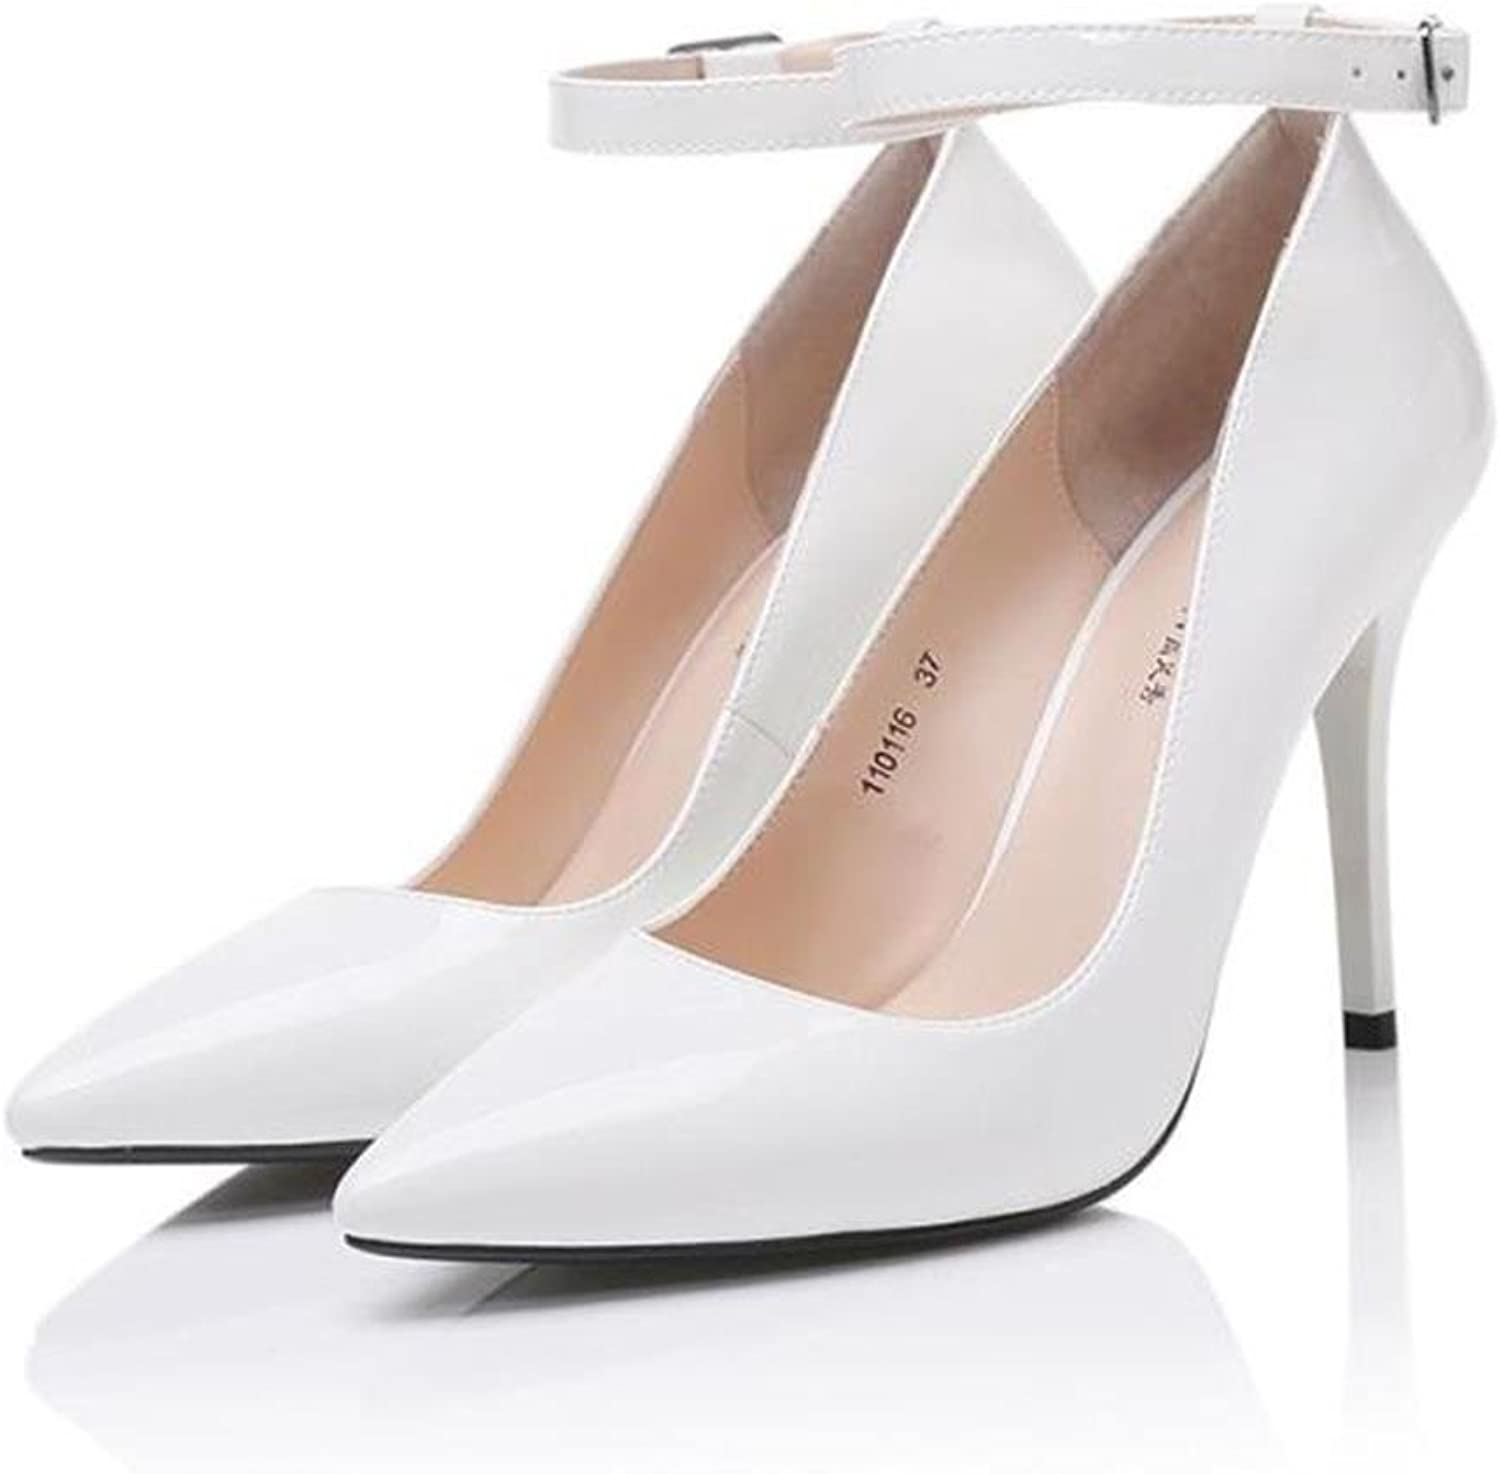 Mesurn Women's shoes - Europe and The United States Sexy Super high-Heeled 10cm 12cm - White fine with Fashion Pointed Professional White-Collar shoes Heeled Sandals